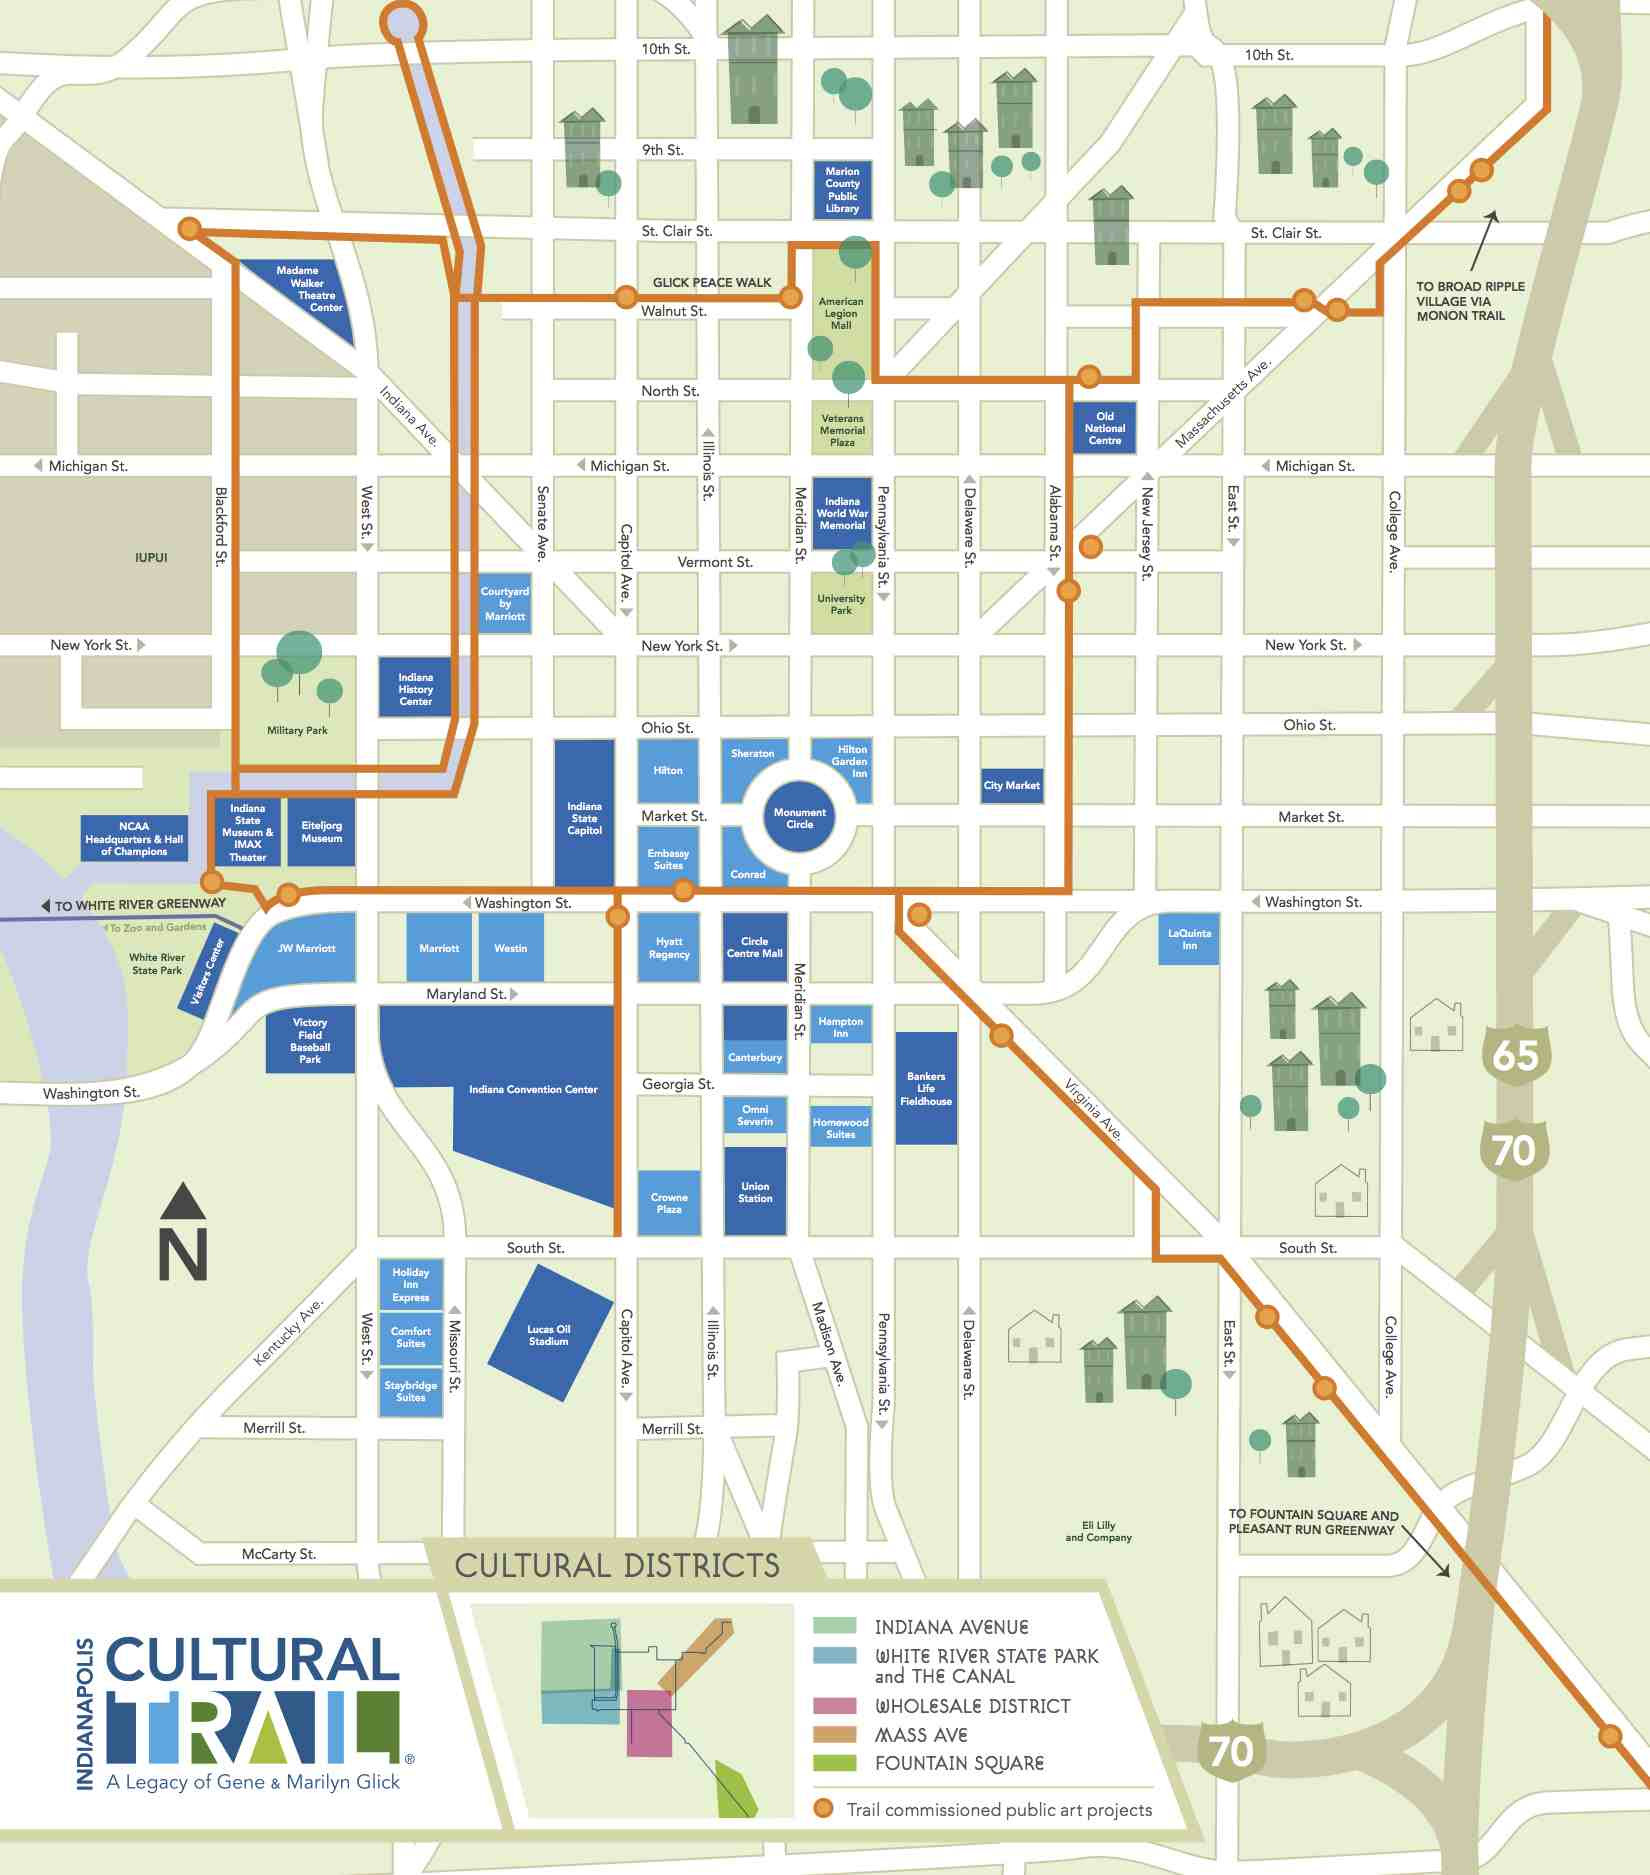 eli lilly campus map Zip Code Map Eli Lilly Campus Map eli lilly campus map